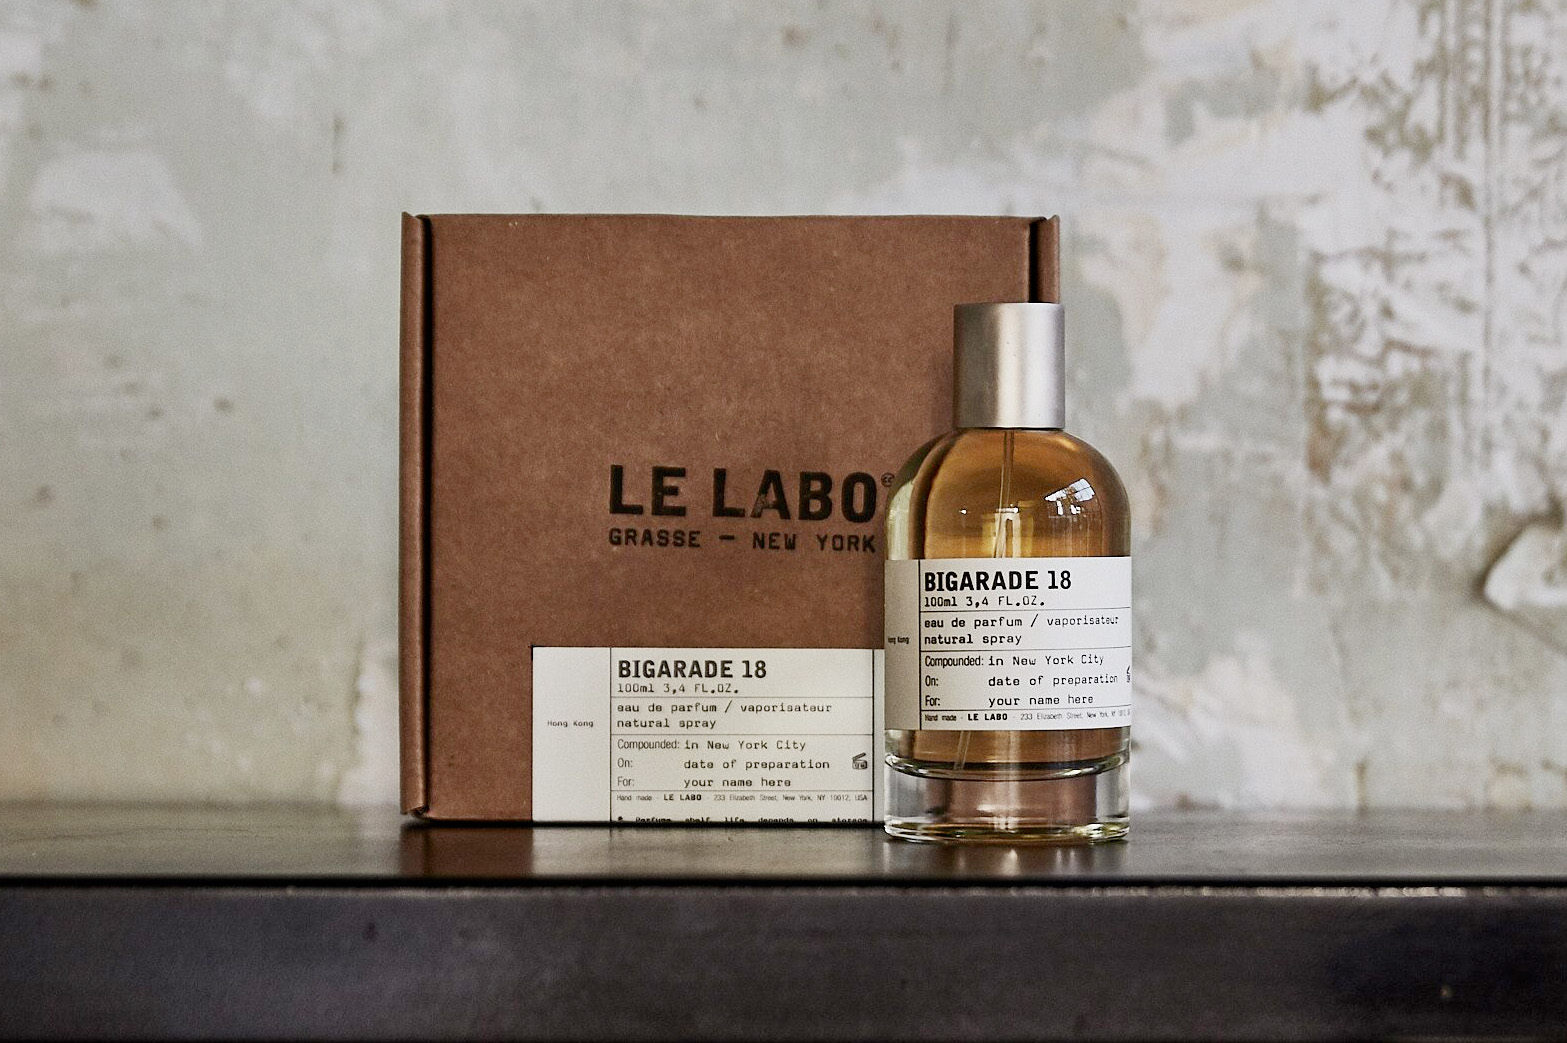 Weekly Obsessions - Le Labo